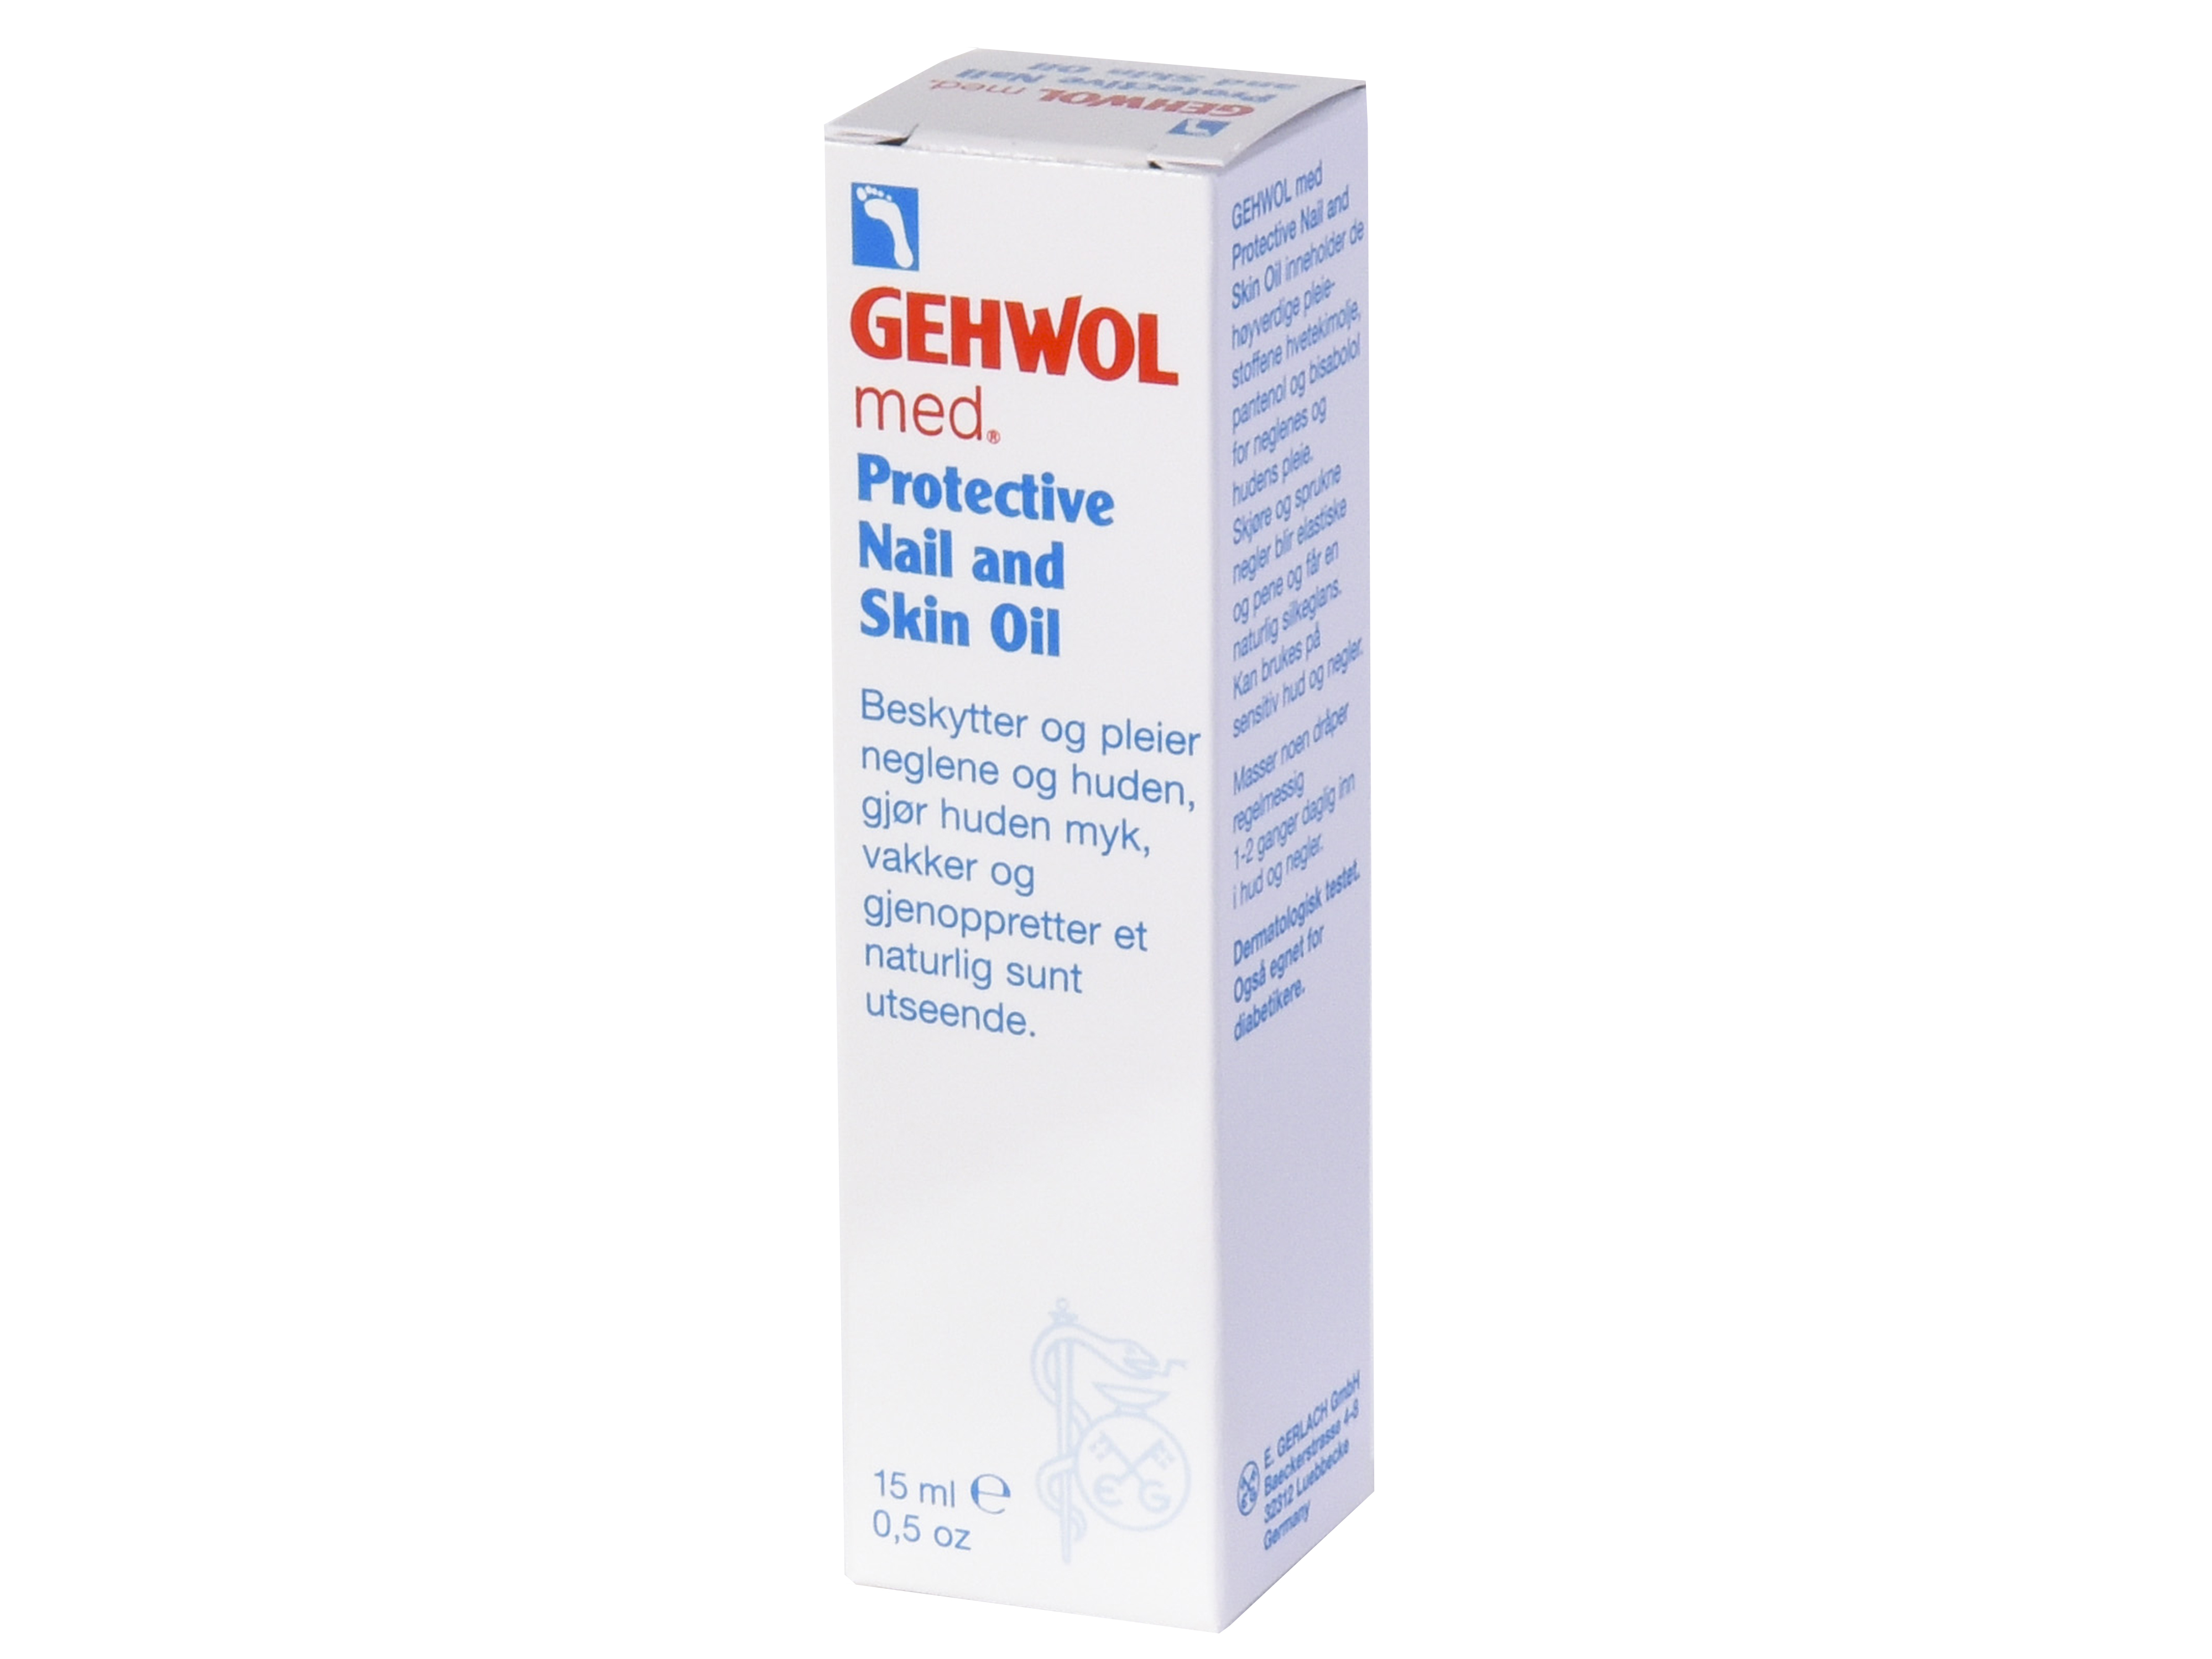 Gehwol med Protective Nail & Skin Oil, 15 ml